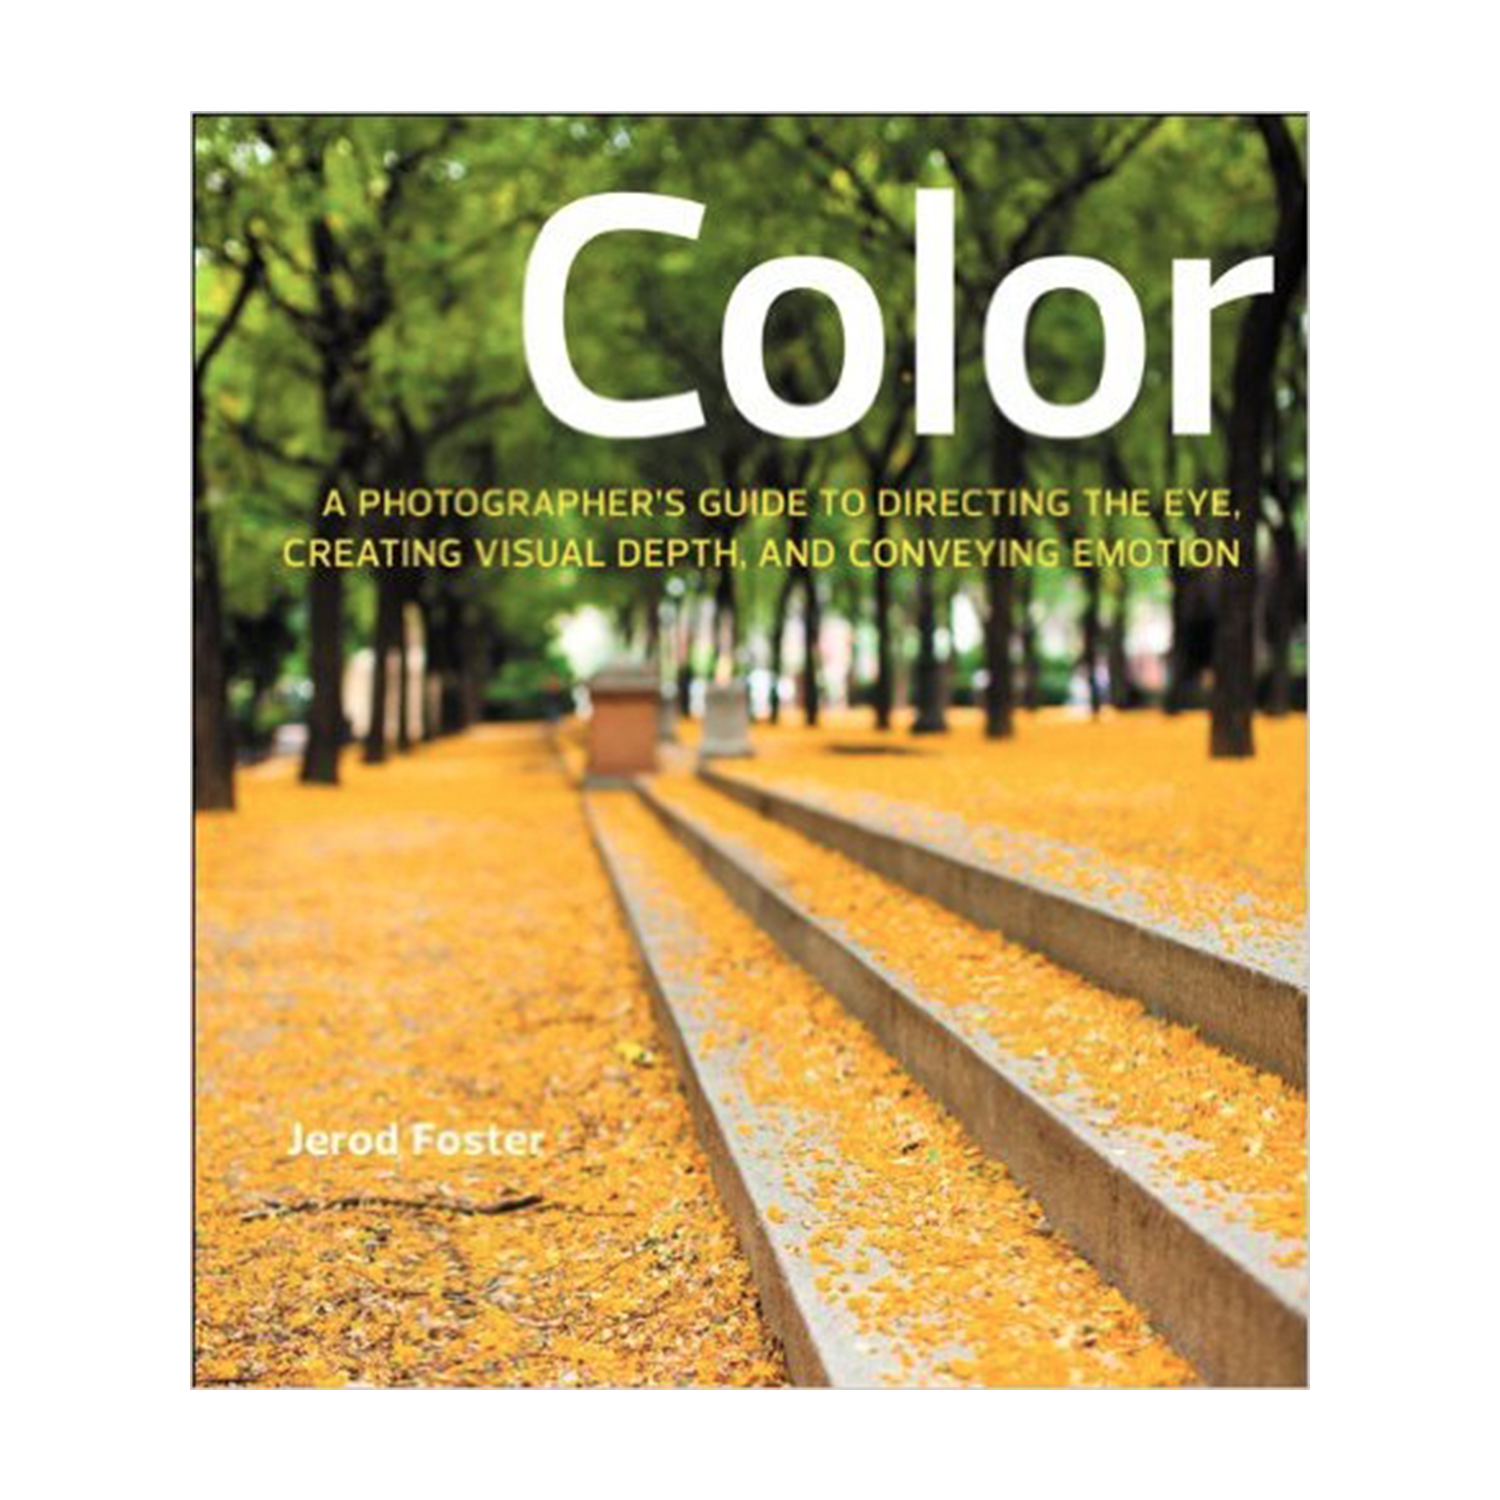 Color: A Photographer's Guide to Directing the Eye, Creating Visual Depth, and Conveying Emotion